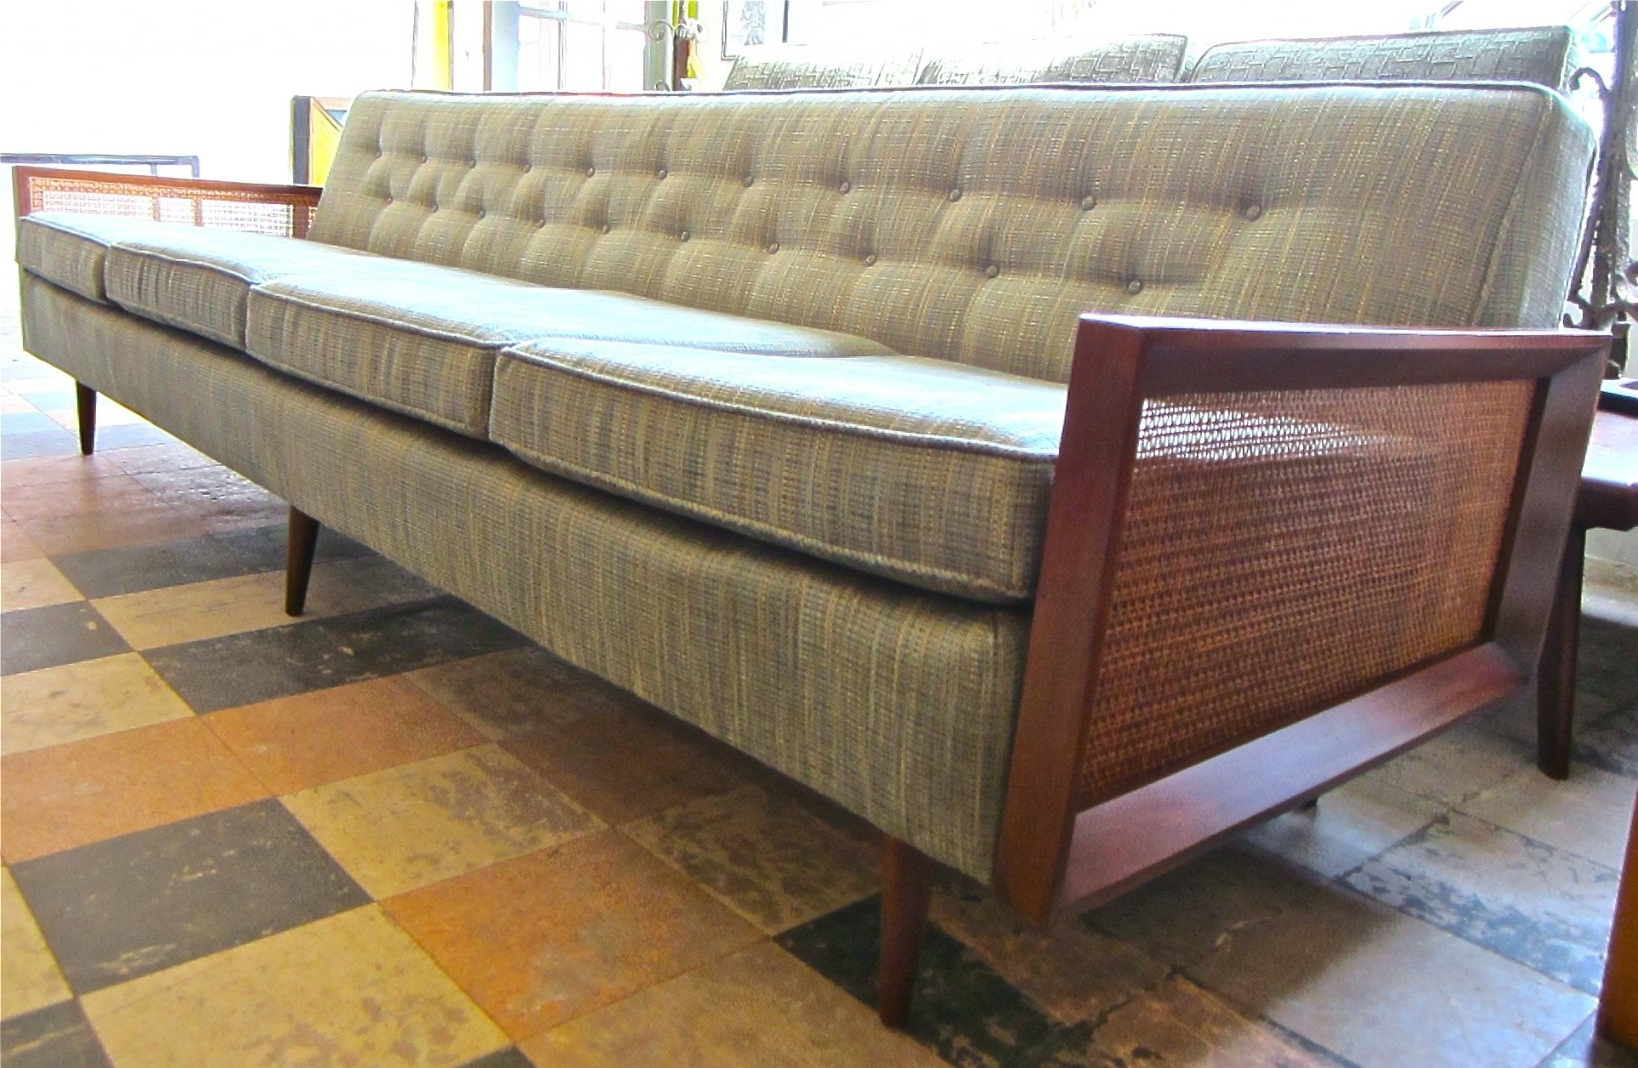 Trendy Sofa : Furniture: Mid Century Modern Wood Frame Extra Long Bench Throughout Long Modern Sofas (View 10 of 20)